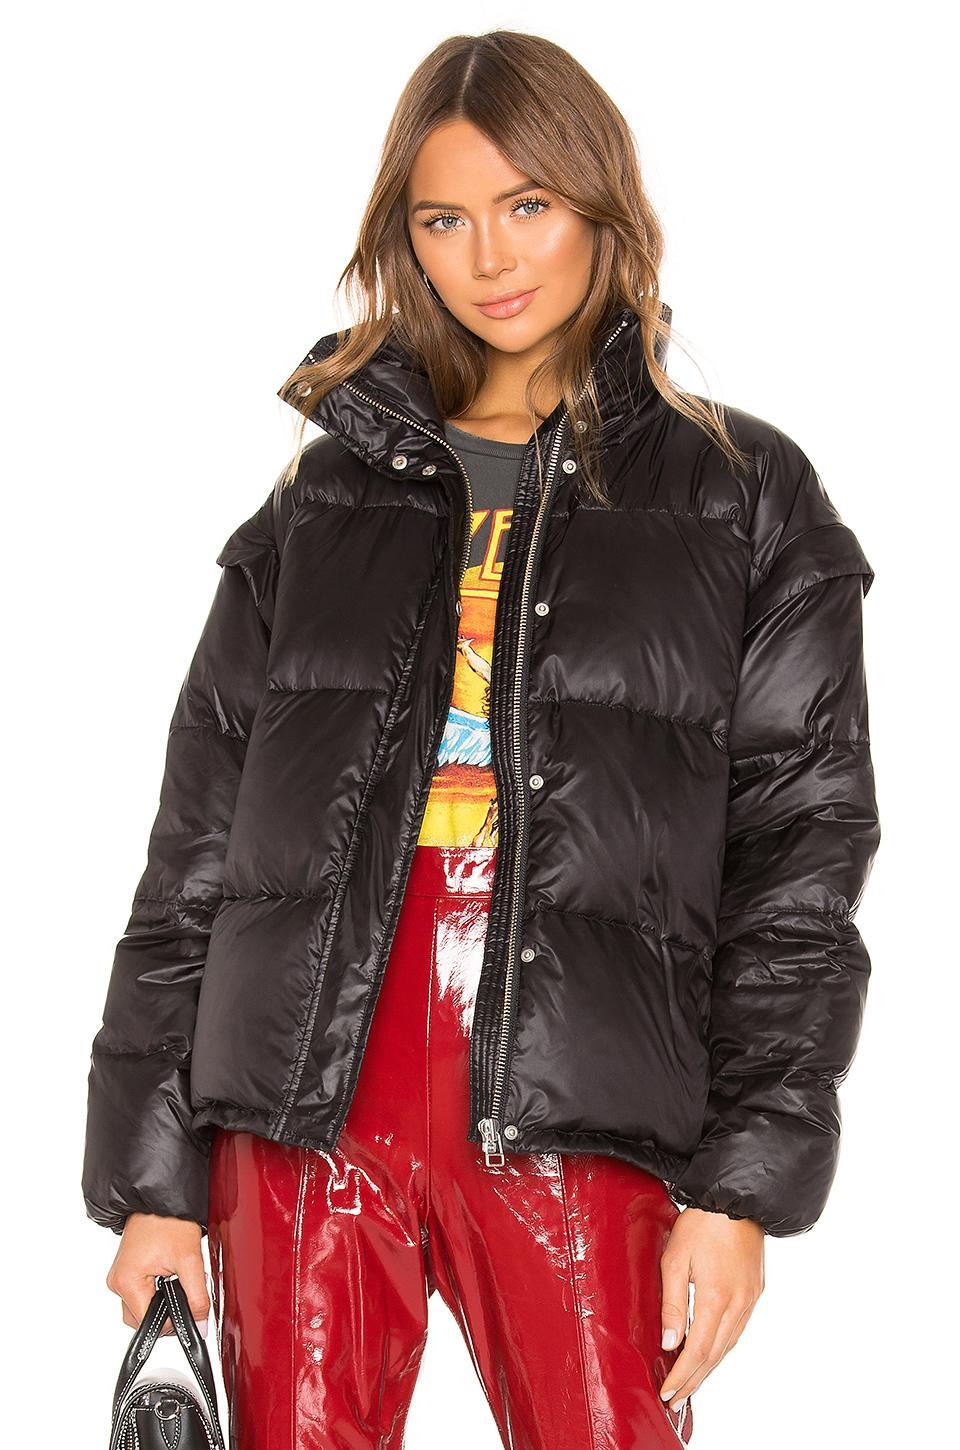 """<br><br><strong>LPA</strong> Ortensia Jacket in Black, $, available at <a href=""""https://www.revolve.com/lpa-ortensia-jacket/dp/LPAR-WO109/?d=Womens&page=1&lc=5&itrownum=2&itcurrpage=1&itview=01&plpSrc=%2Fr%2FSearch.jsp%3Fsearch%3Dblack%2Bpuffa%2Bcoat%26d%3DWomens%26s%3Db%26c%3DLPA%26sortBy%3Dfeatured"""" rel=""""nofollow noopener"""" target=""""_blank"""" data-ylk=""""slk:Revolve"""" class=""""link rapid-noclick-resp"""">Revolve</a>"""